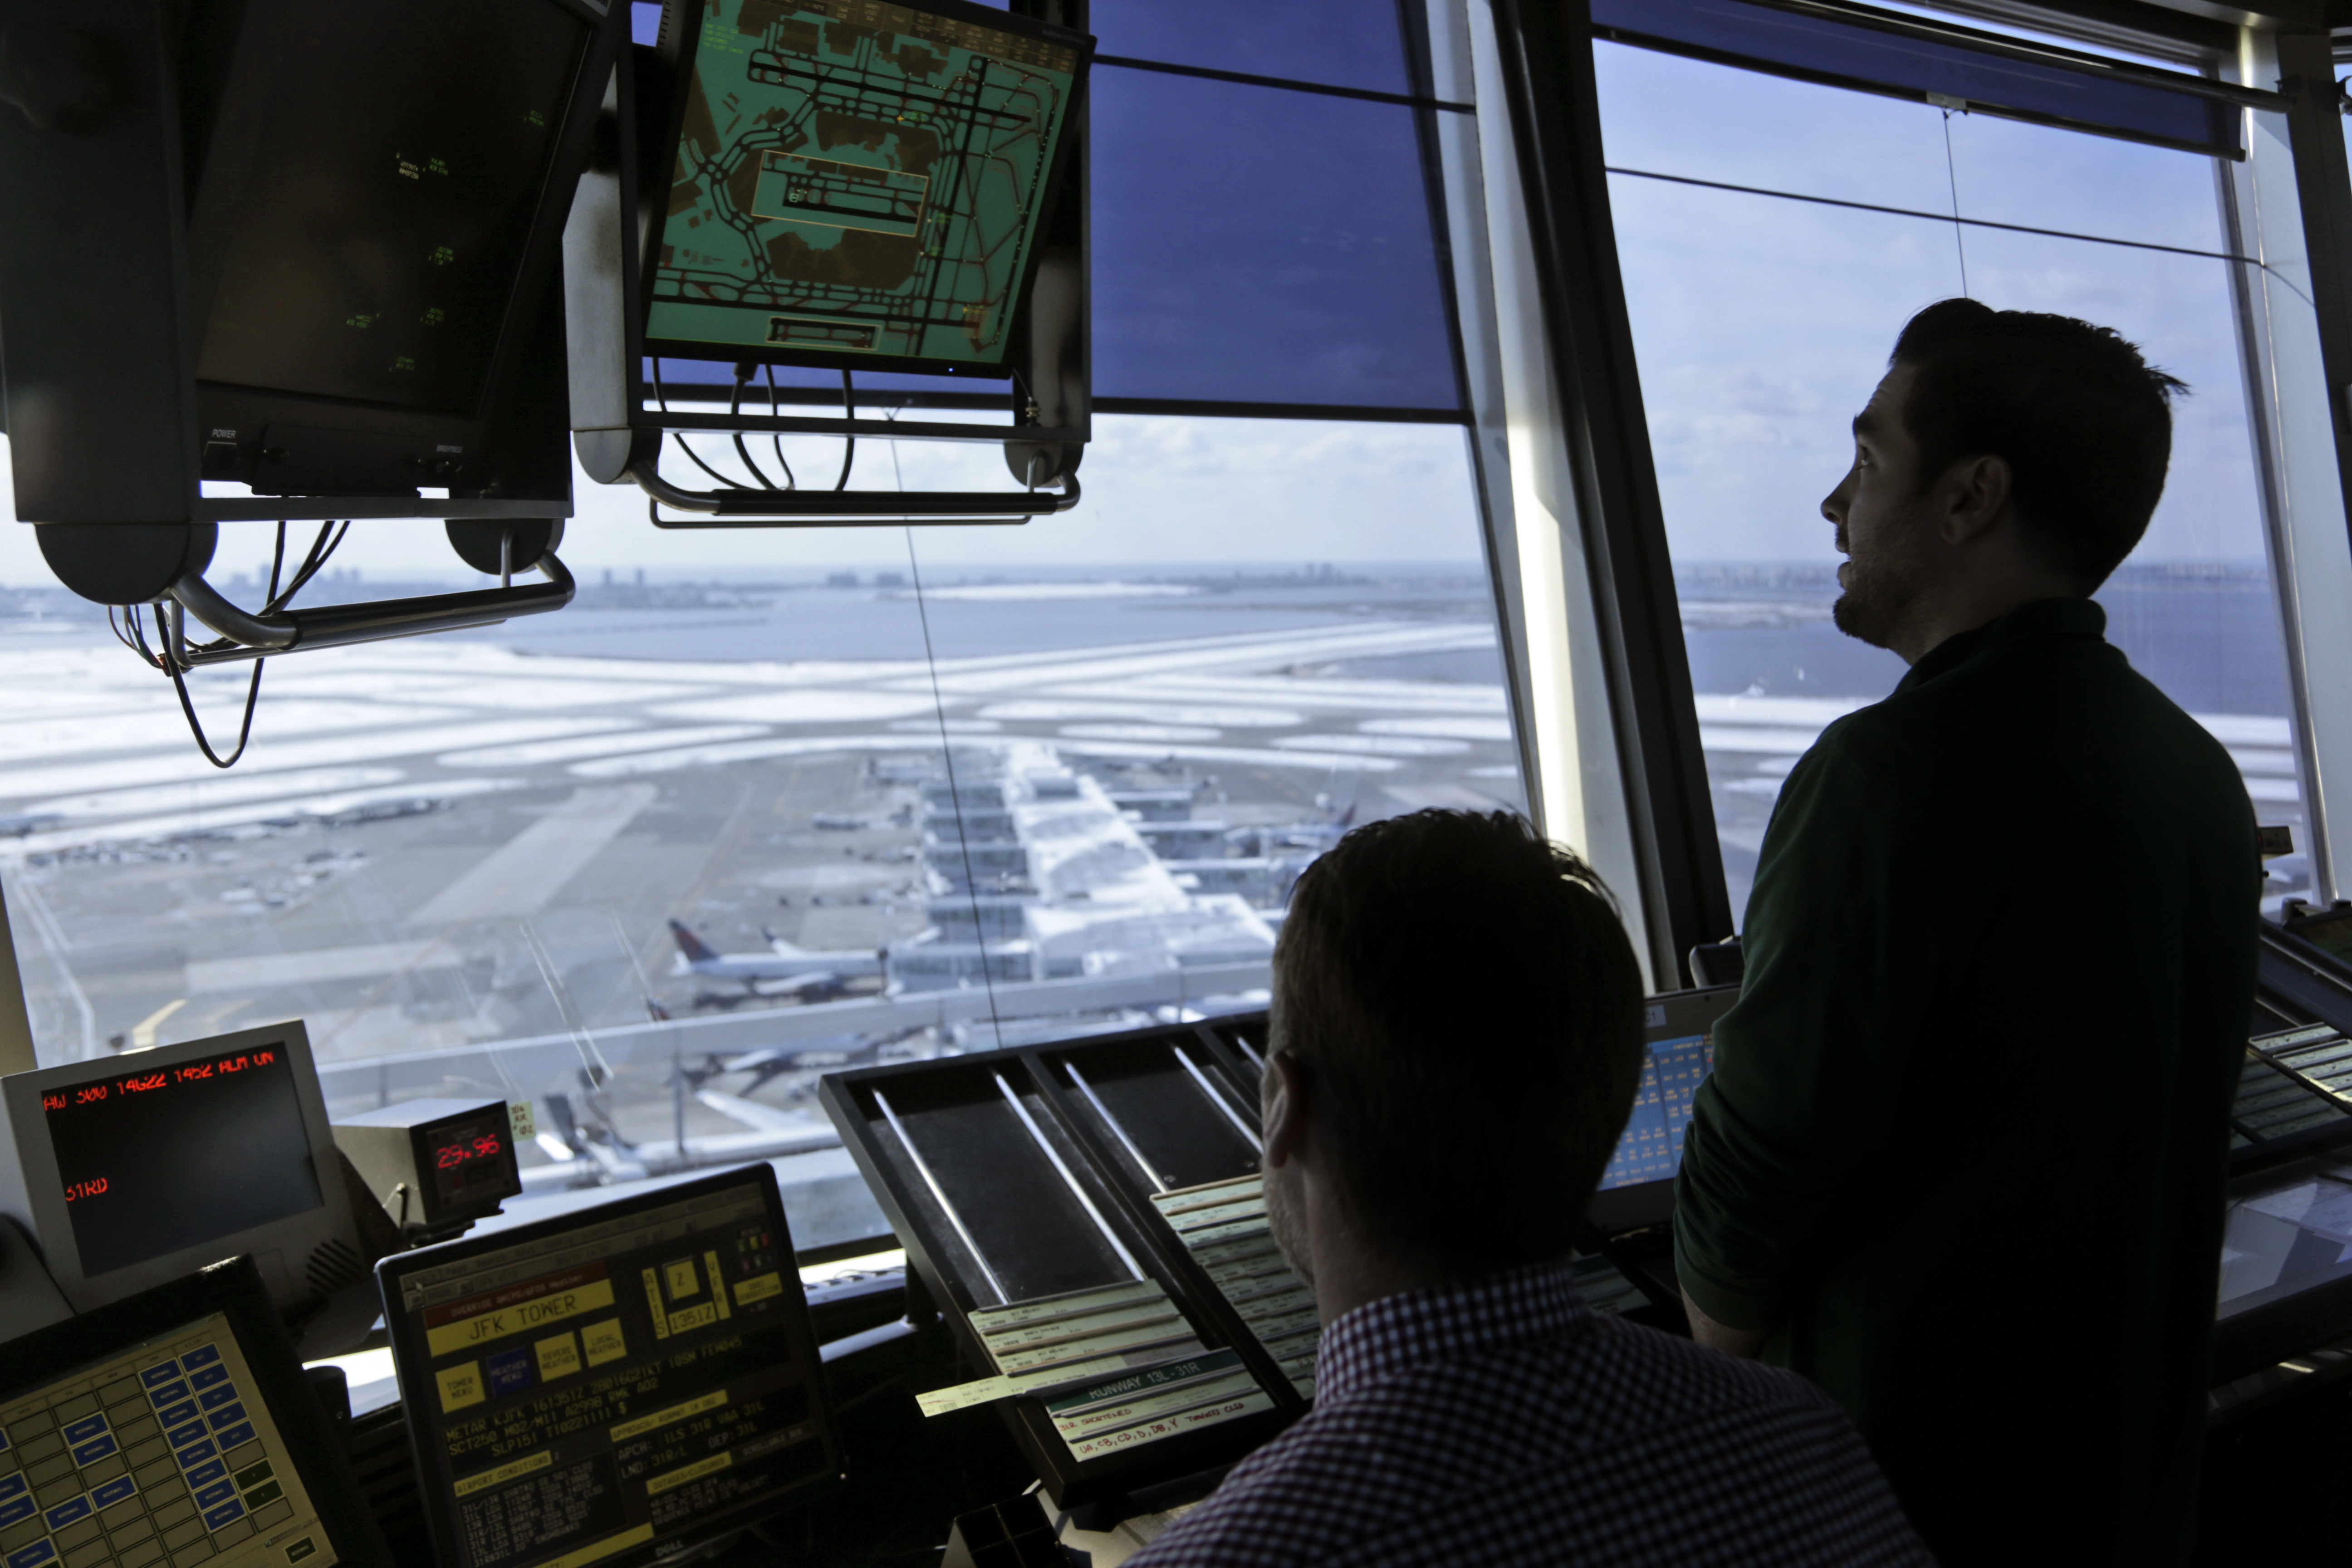 In this March 16, 2017 photo, air traffic controllers work in the tower at John F. Kennedy International Airport in New York. President Donald Trump has embraced airlines' decades-long goal of removing air traffic control operations from the government and putting industry in charge, making it a key part of his agenda to boost the nation's infrastructure through privatization. And yet, his prospects for closing the deal with Congress appear slim. (Seth Wenig/AP)